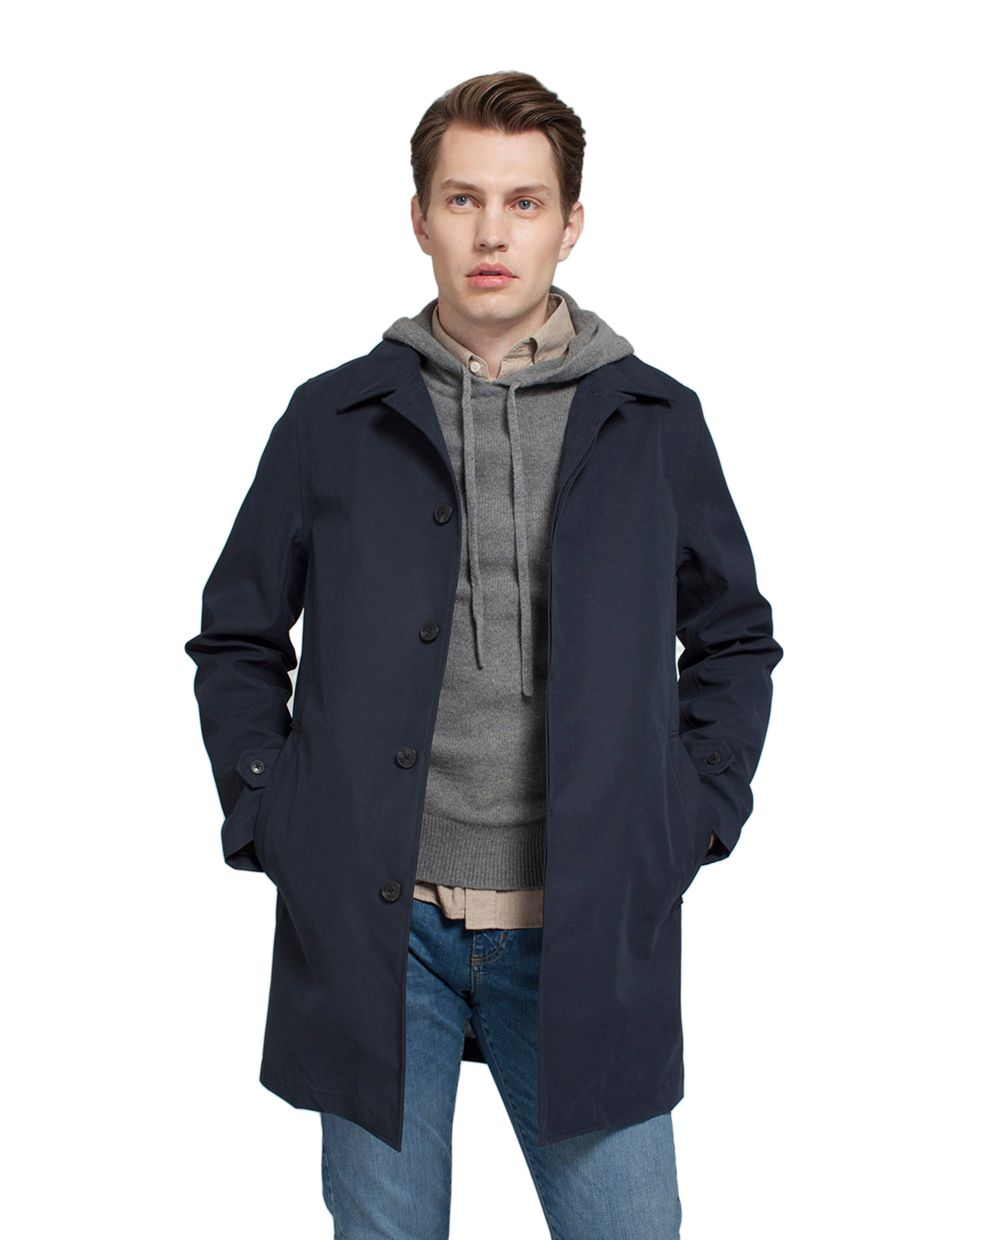 Bild 1 av Pierce Overcoat